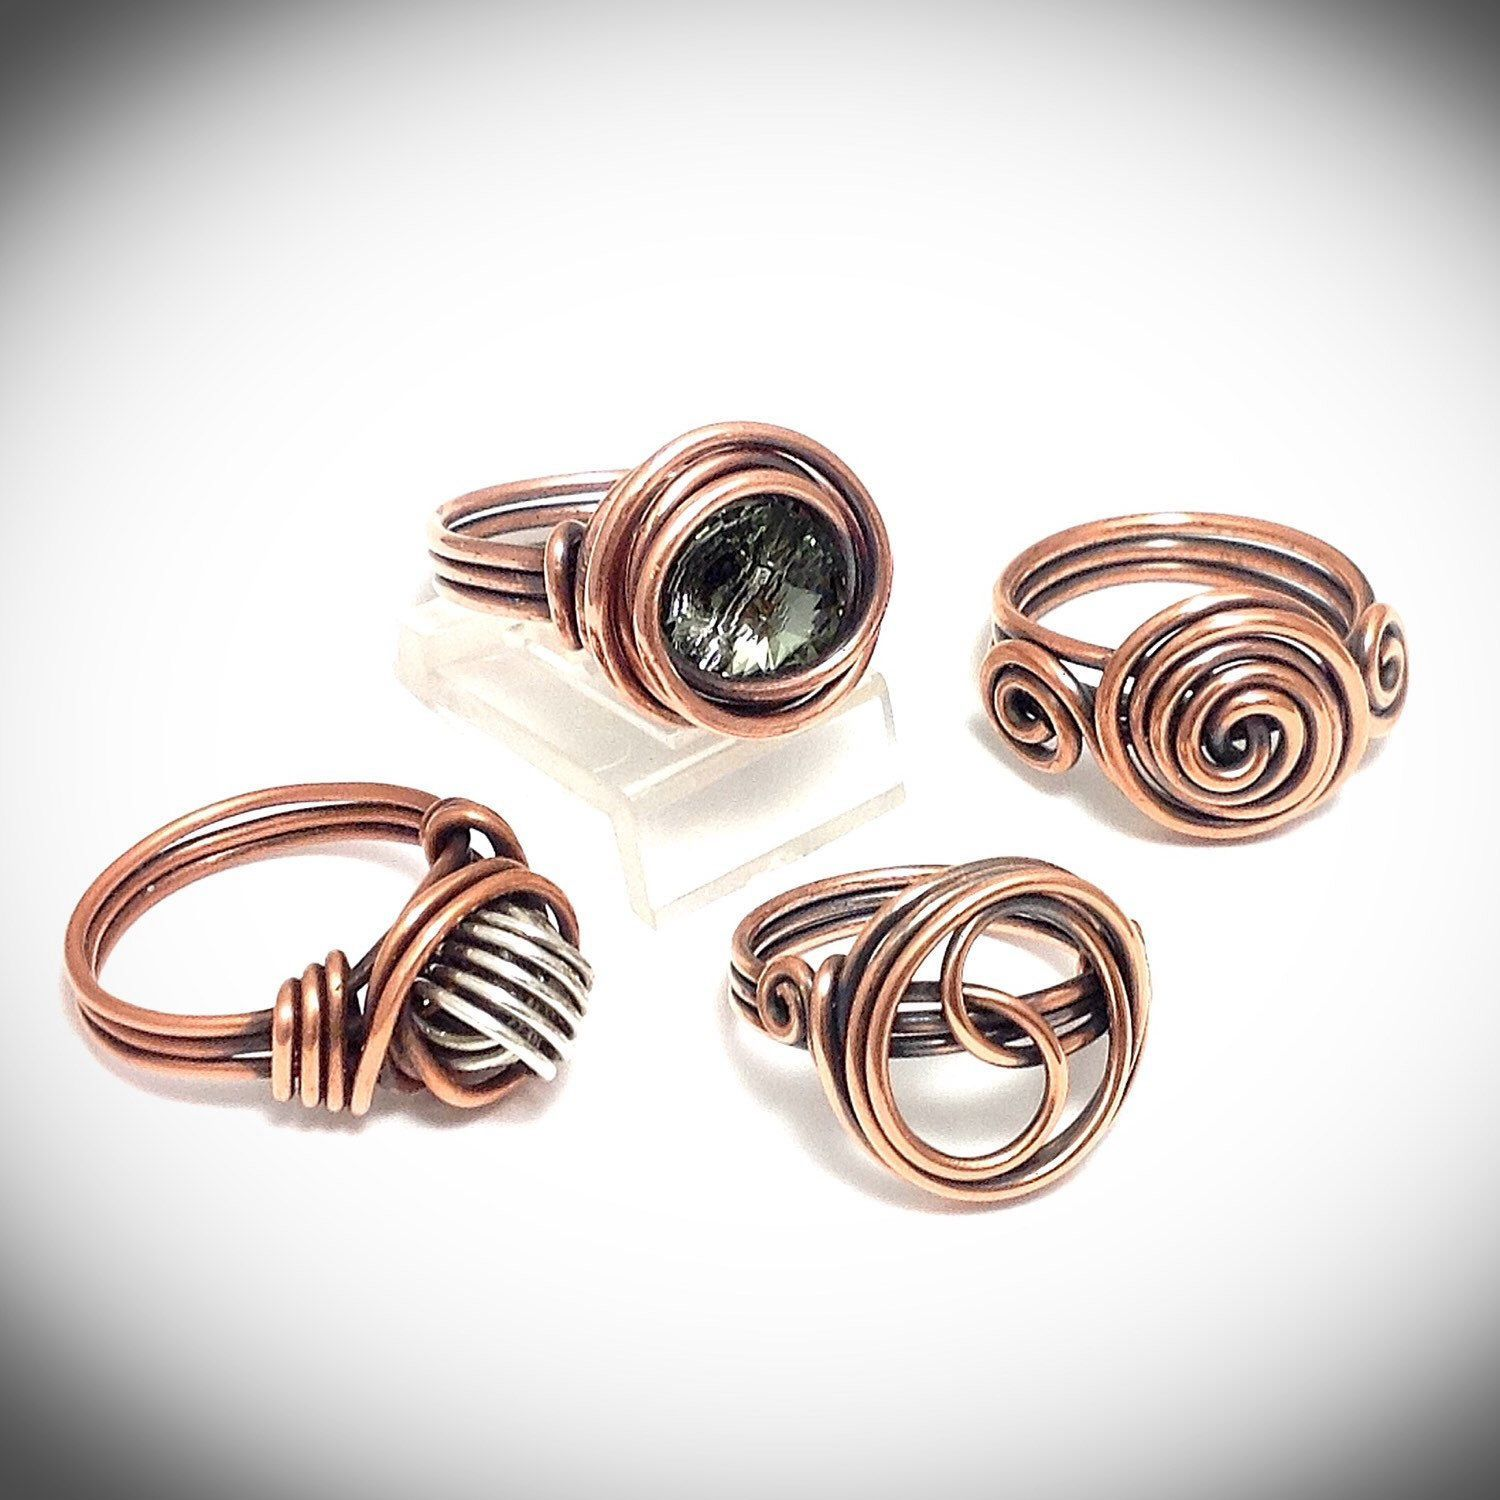 A sample of copper wire wrapped rings available at JCLwire Jewelry ...